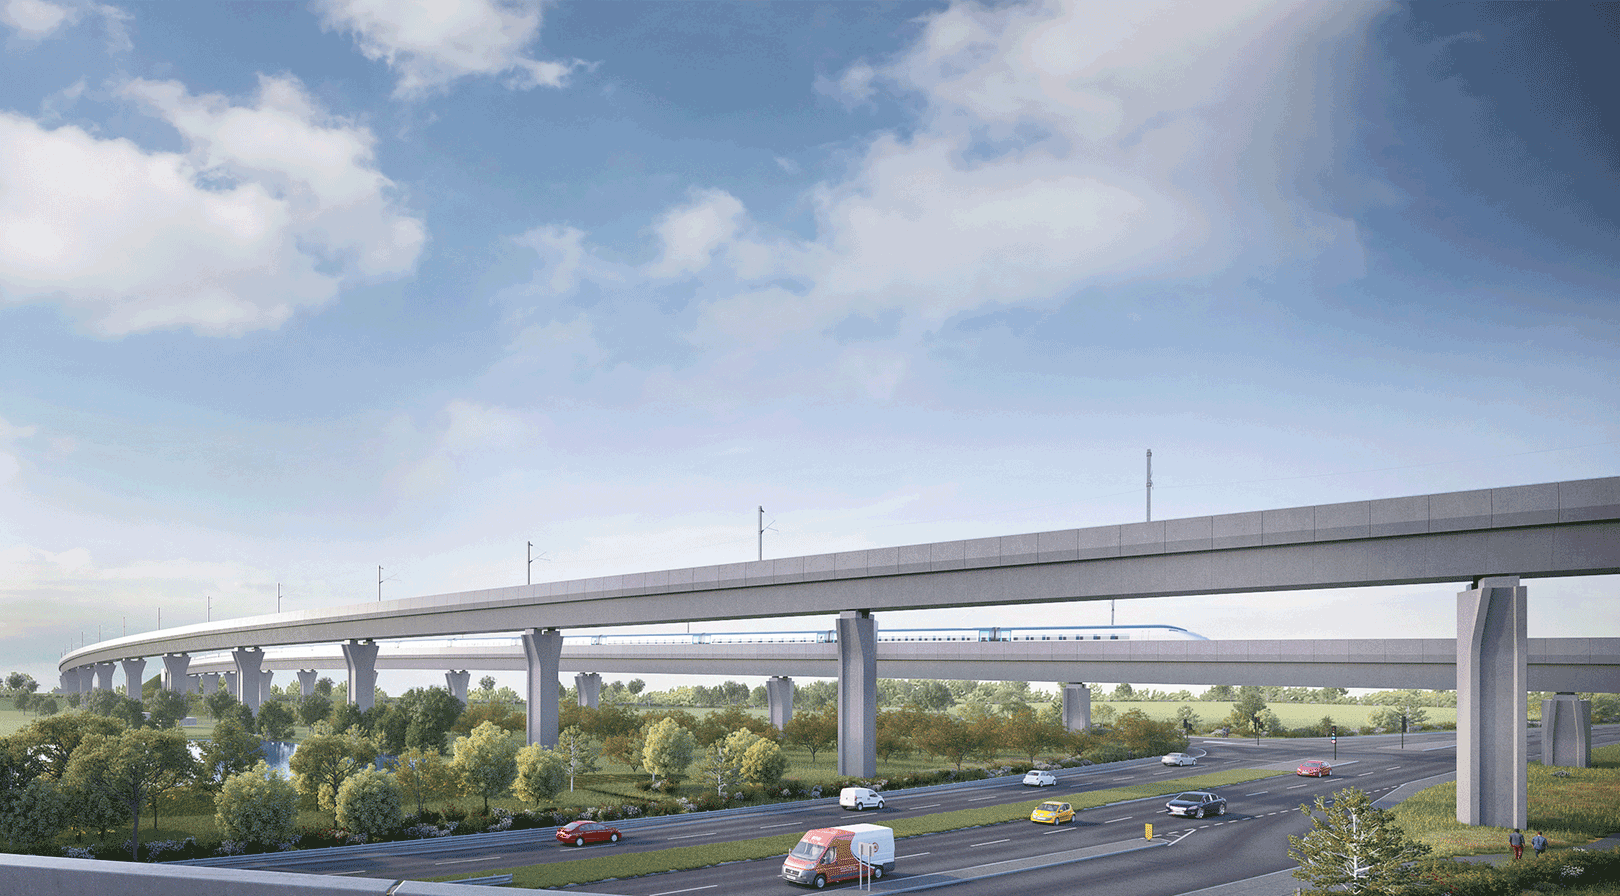 Midlands - Main Works Civils Contract, HS2